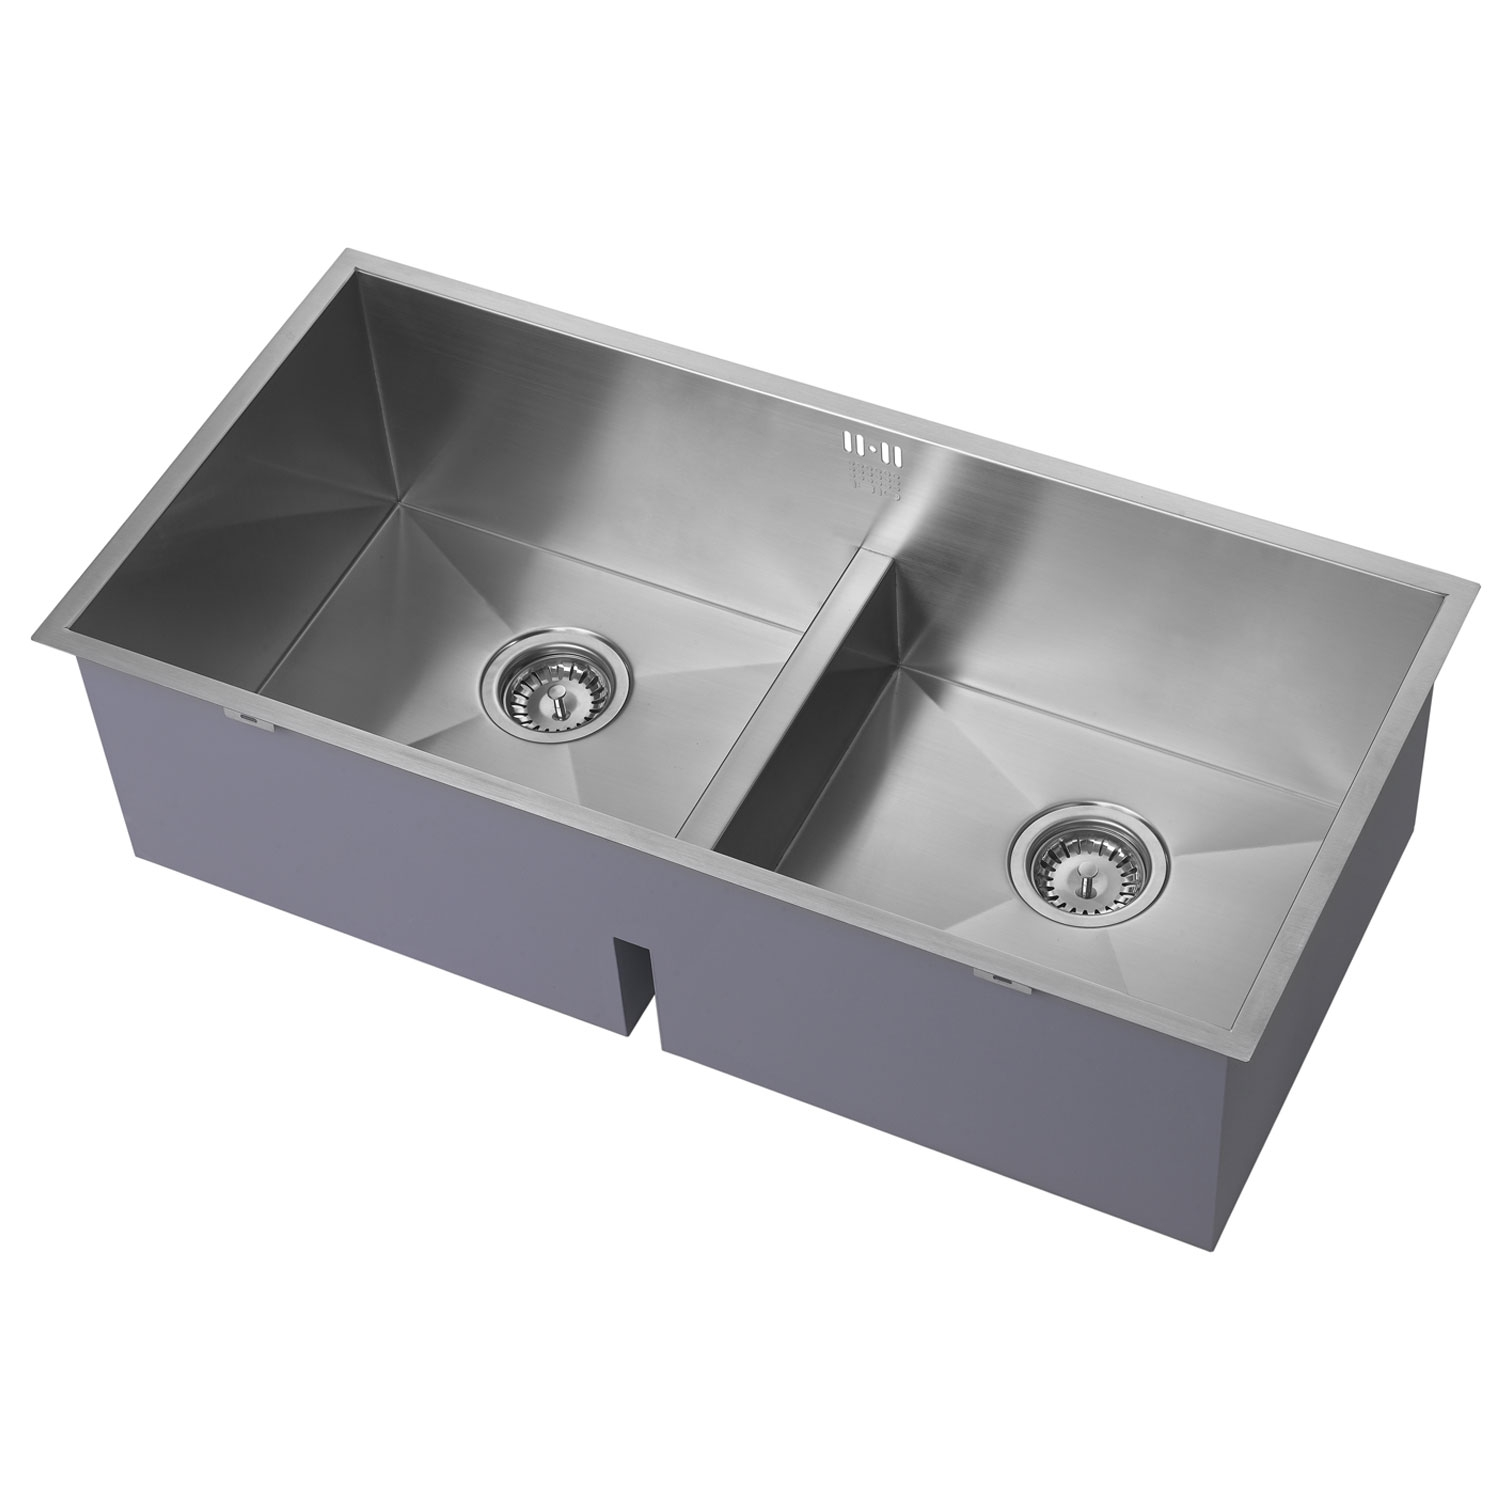 The 1810 Company Zenduo 415/415U Deep 2.0 Bowl Kitchen Sink - Stainless Steel